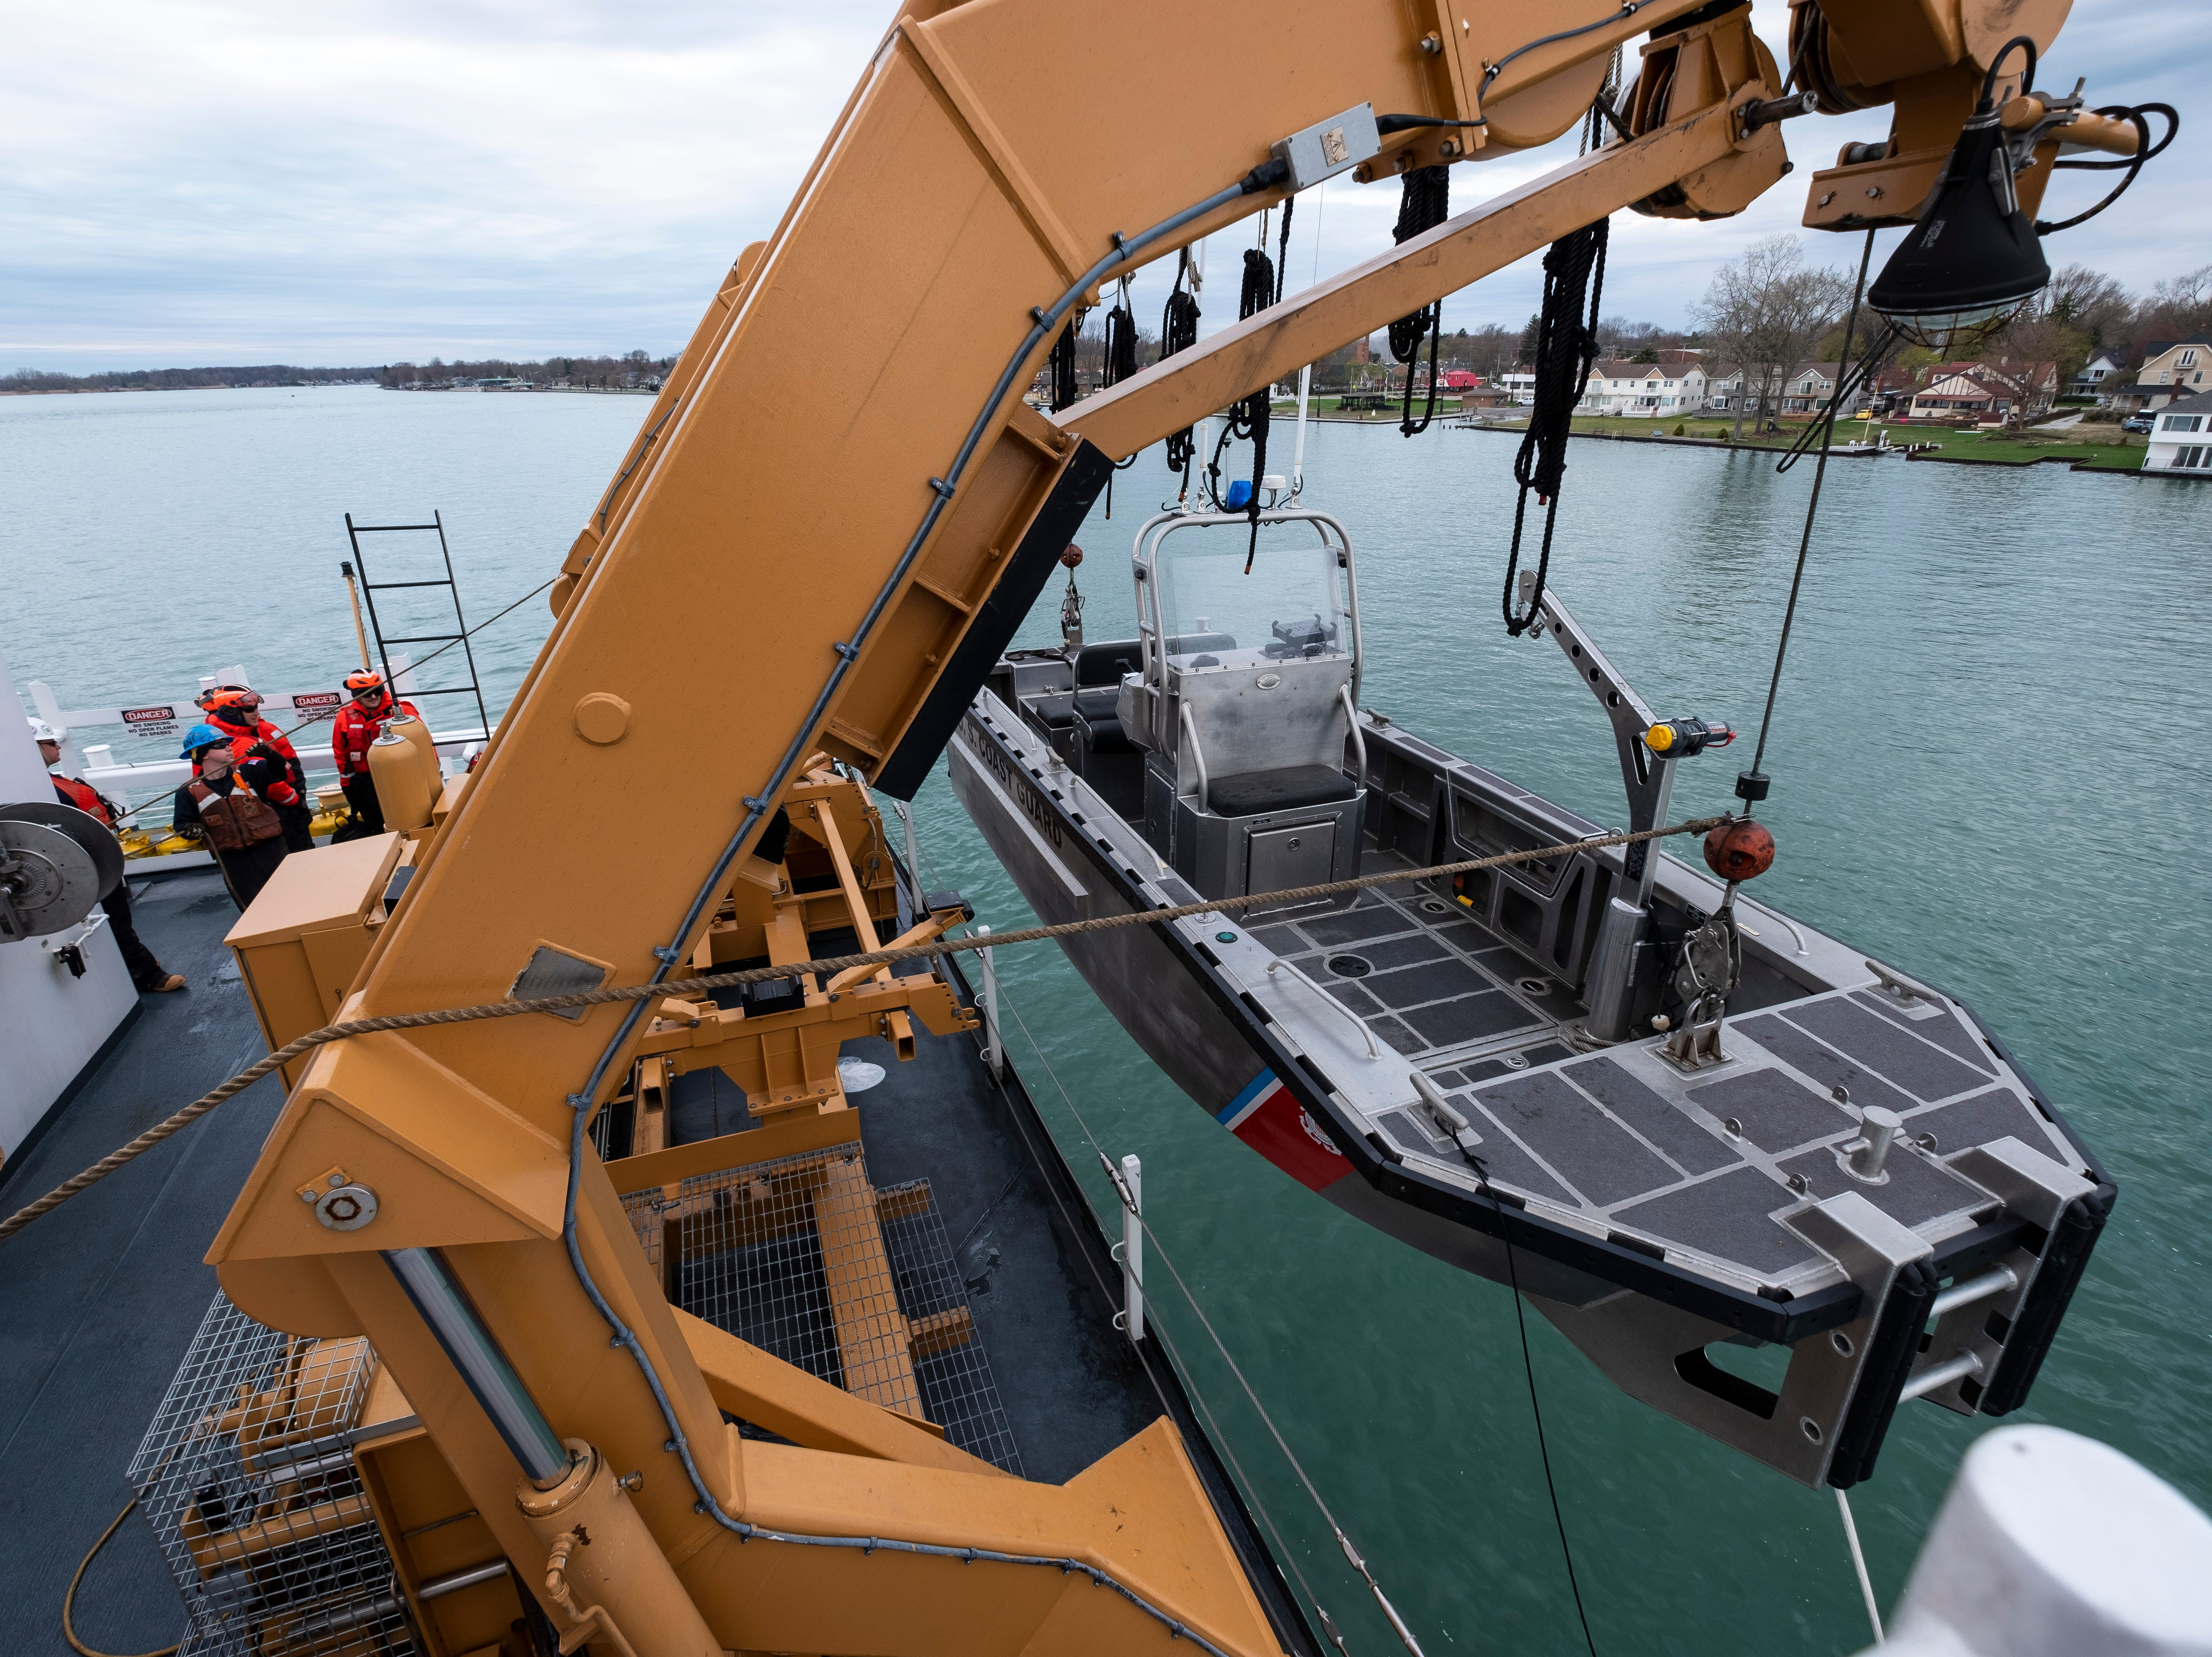 """Crewmembers prepare to lower the Hollyhock's Aids to Navigation System, or ATON boat as the ship pulls away from the Algonac pier Thursday morning, April 25, 2019. The boat is being deployed with several crewmembers to help complete the day's work by doing simpler tasks on buoys that wouldn't need to be removed from the water, such as replacing lights. """"It allows us to do two jobs at once,"""" said U.S. Coast Guard Lt. Cmdr. Nick Monacelli, Hollyhock's captain."""